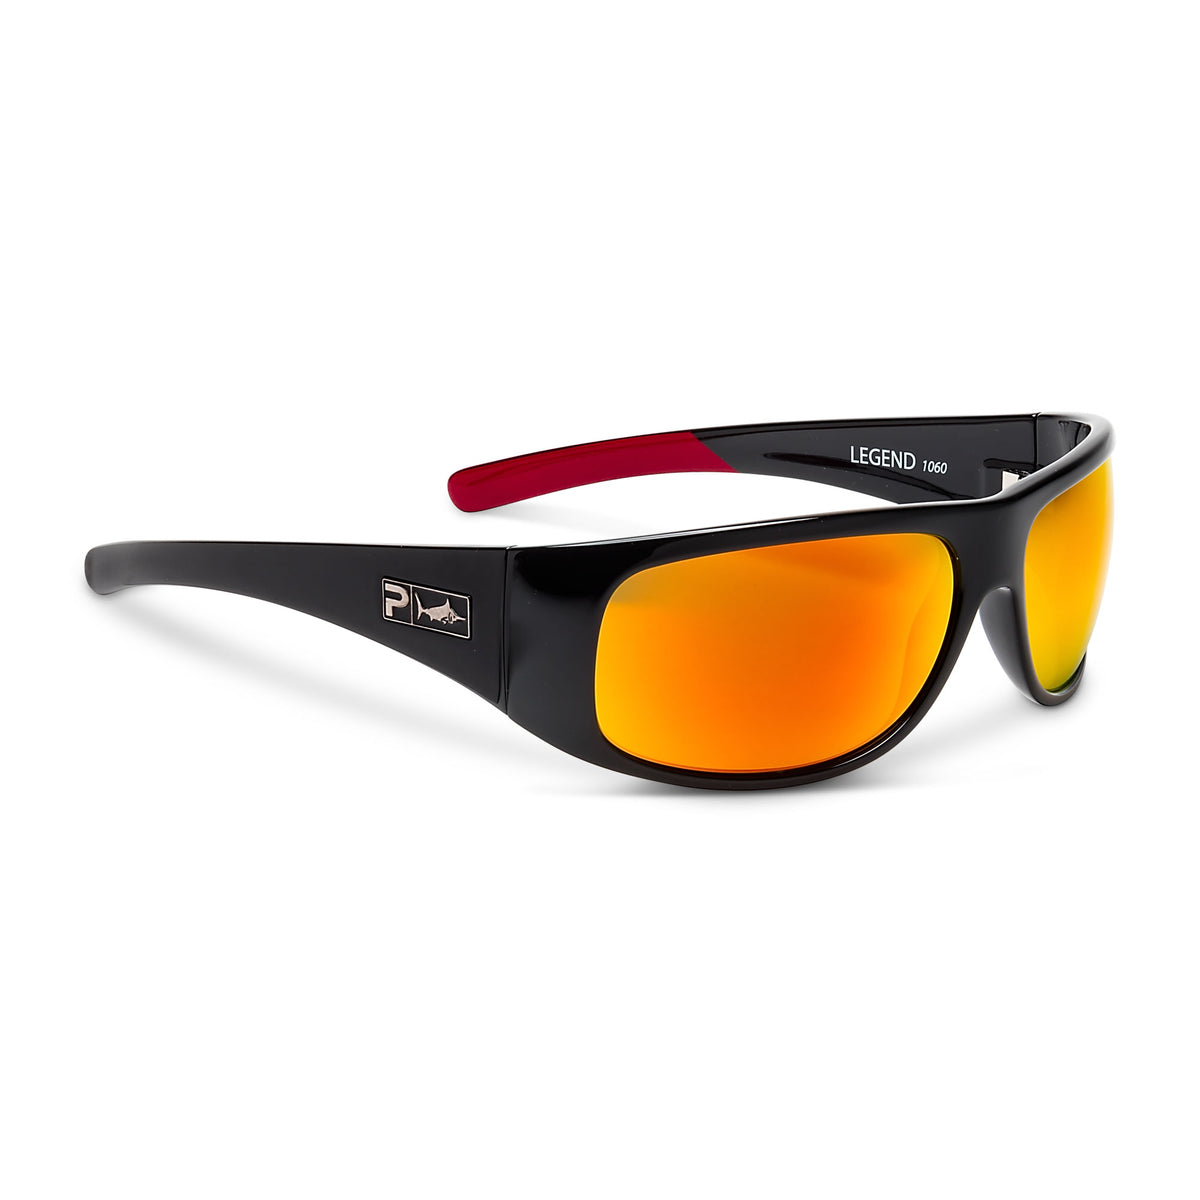 Legend - Polarized Polycarbonate Lens Big Image - 1